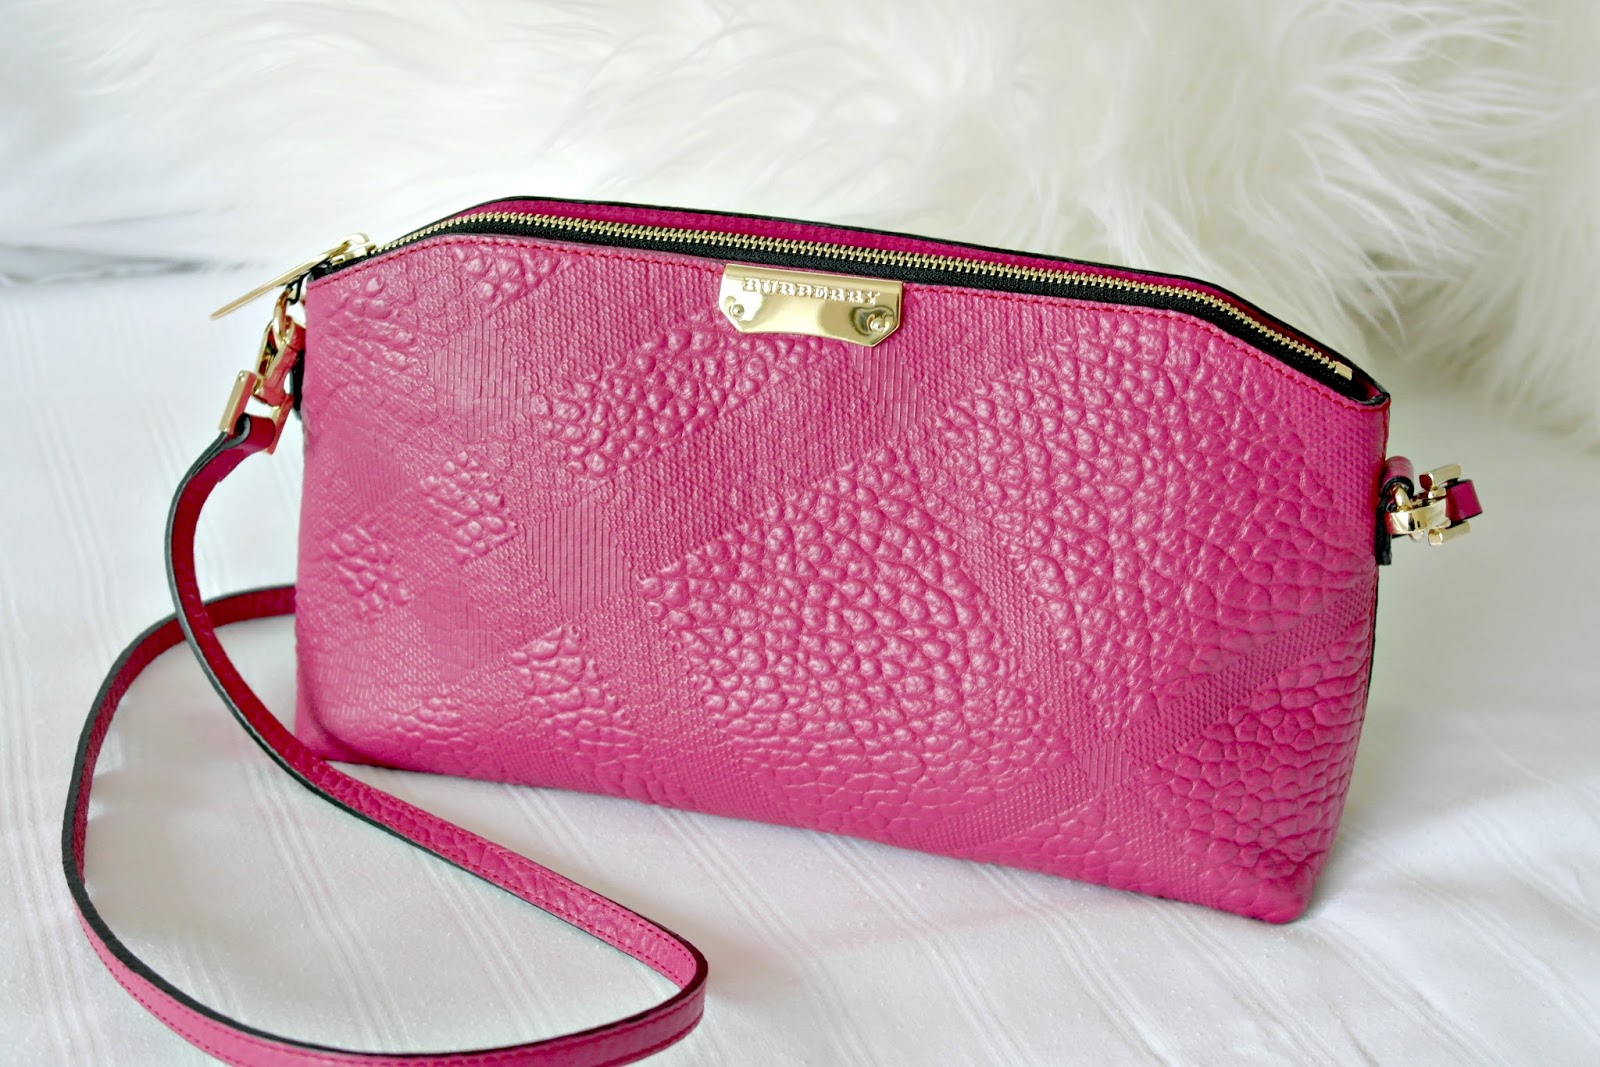 f17012fbba35 Pink Burberry Clutch Handbag - Devoted To Pink